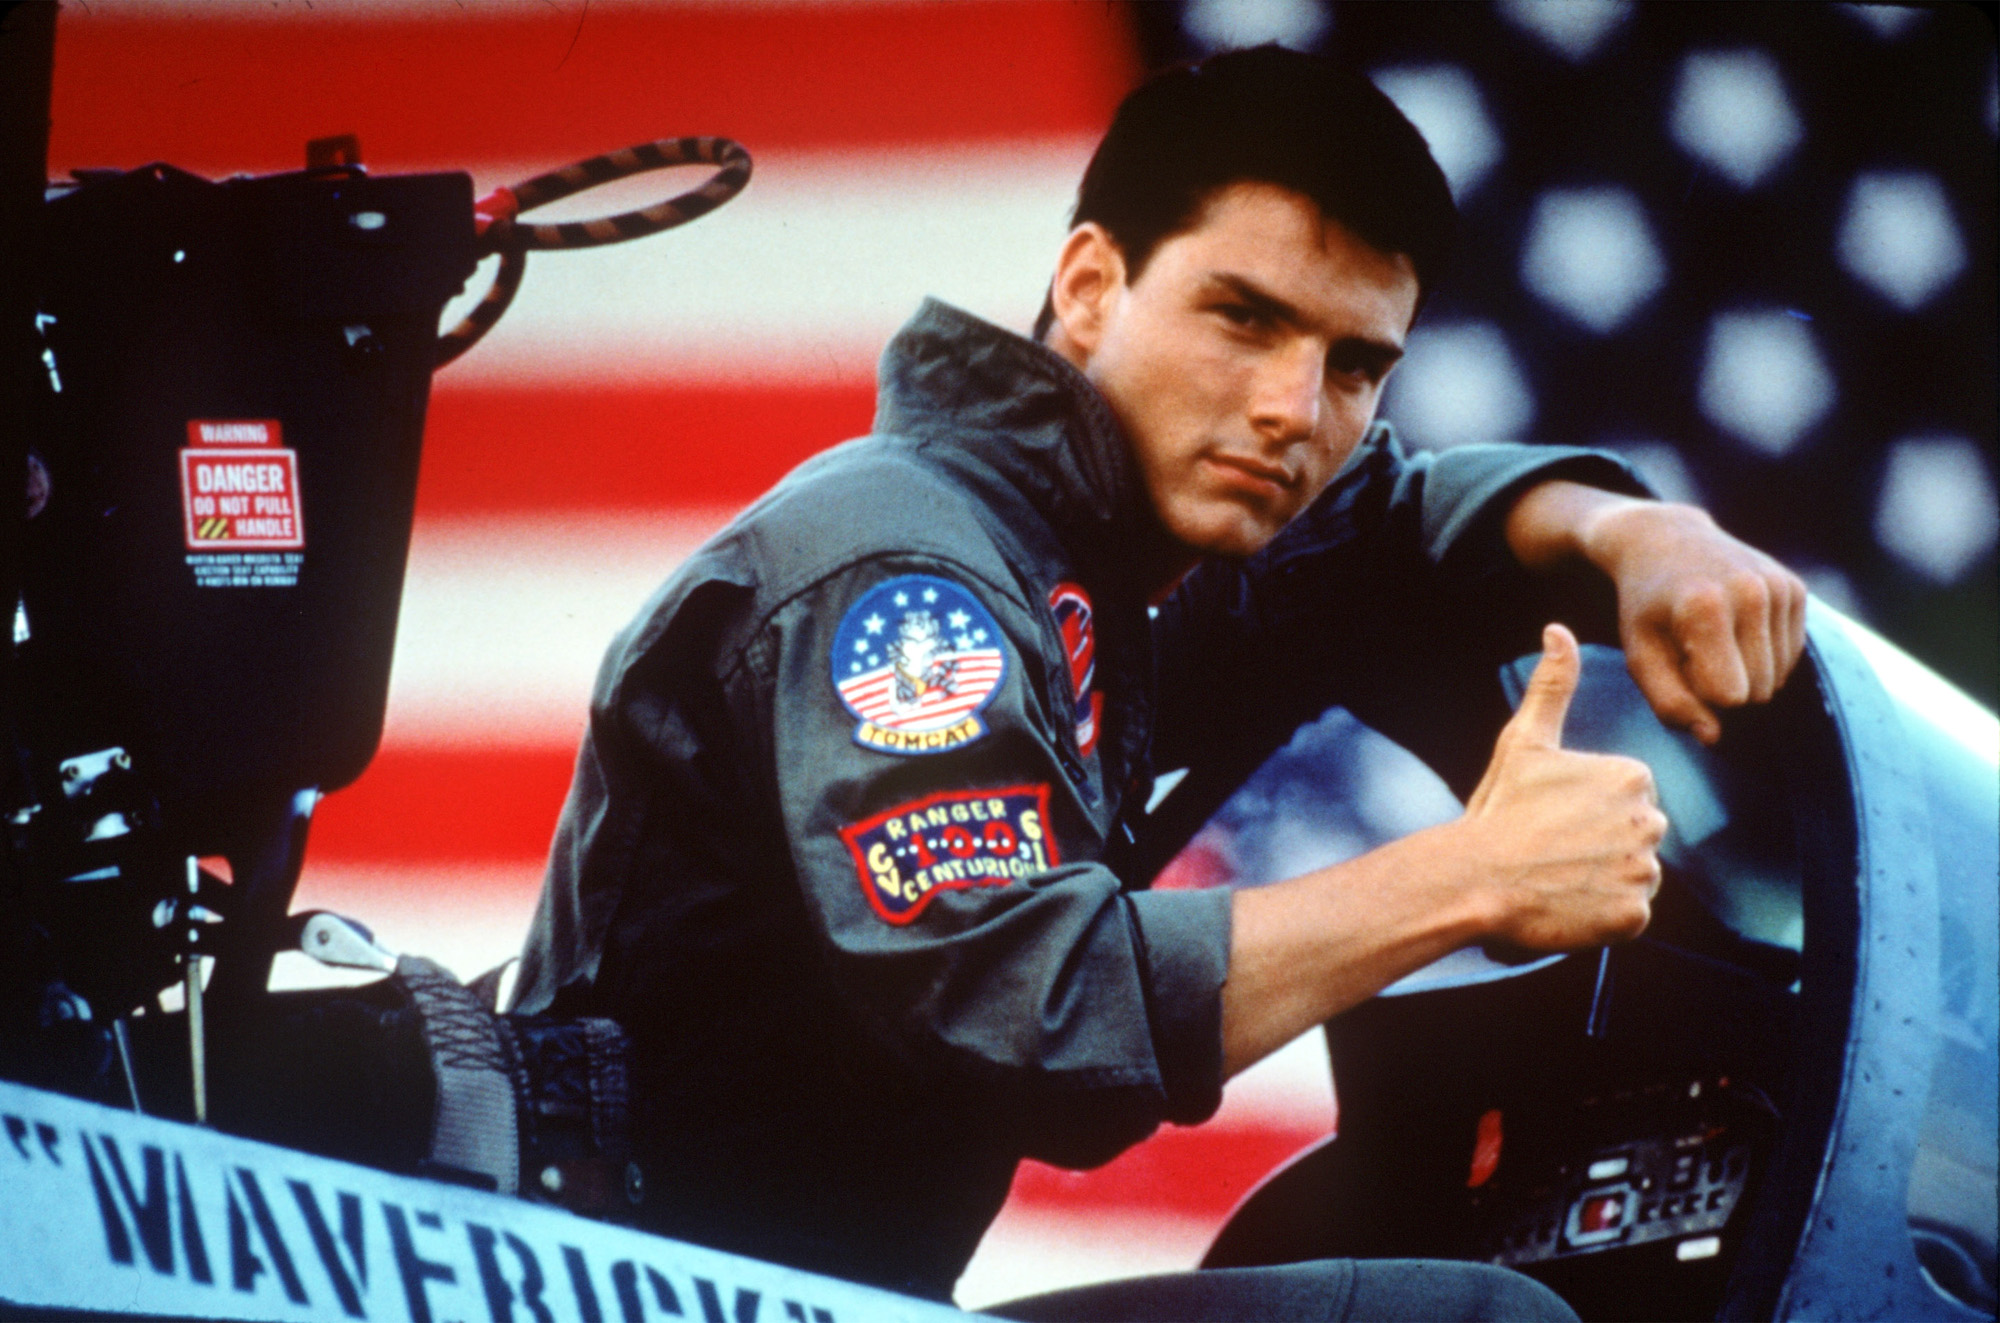 Want Tom Cruise's 'Top Gun' flight suit? You'll have to bid big